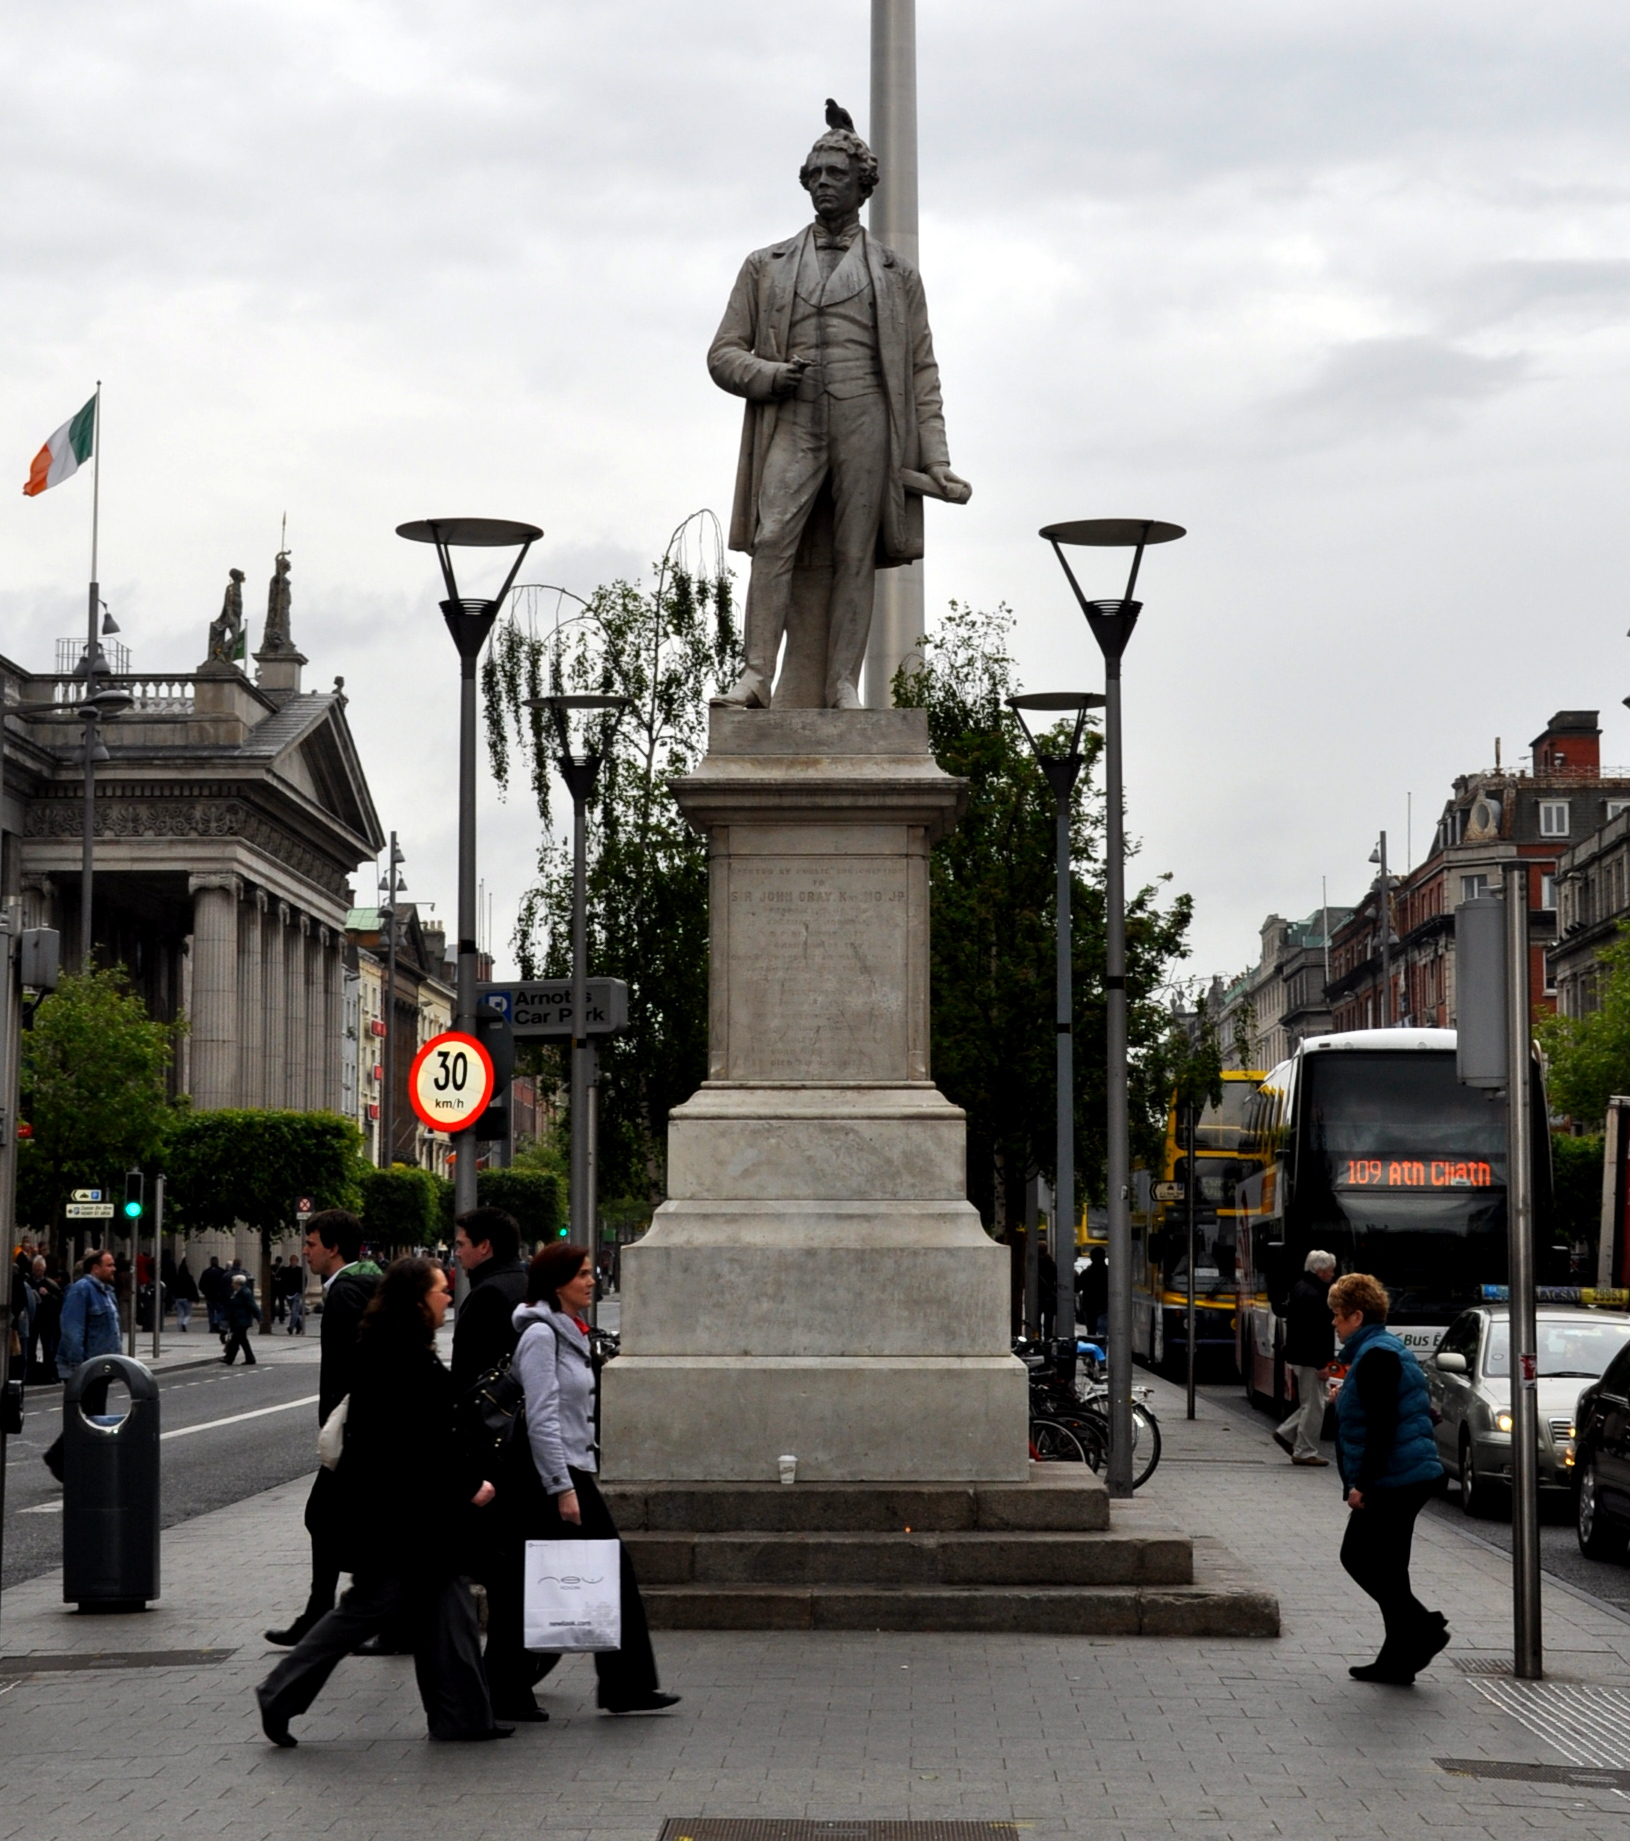 NEWSPAPERS: Future of Media Commission announced in Ireland